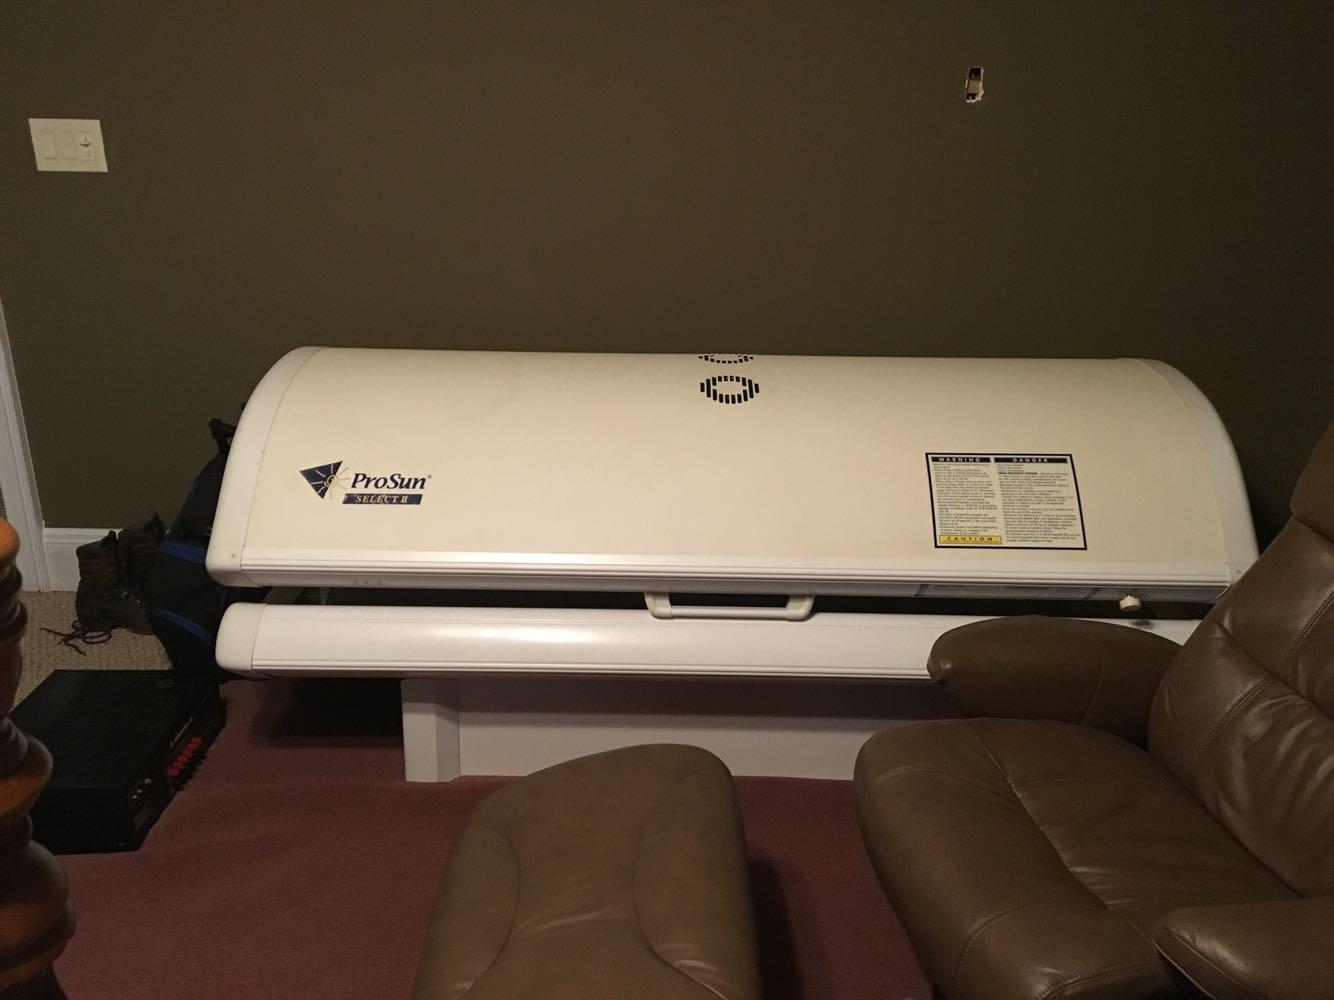 Best Prosun Select Ii 24 Tanning Bed For Sale For Sale In